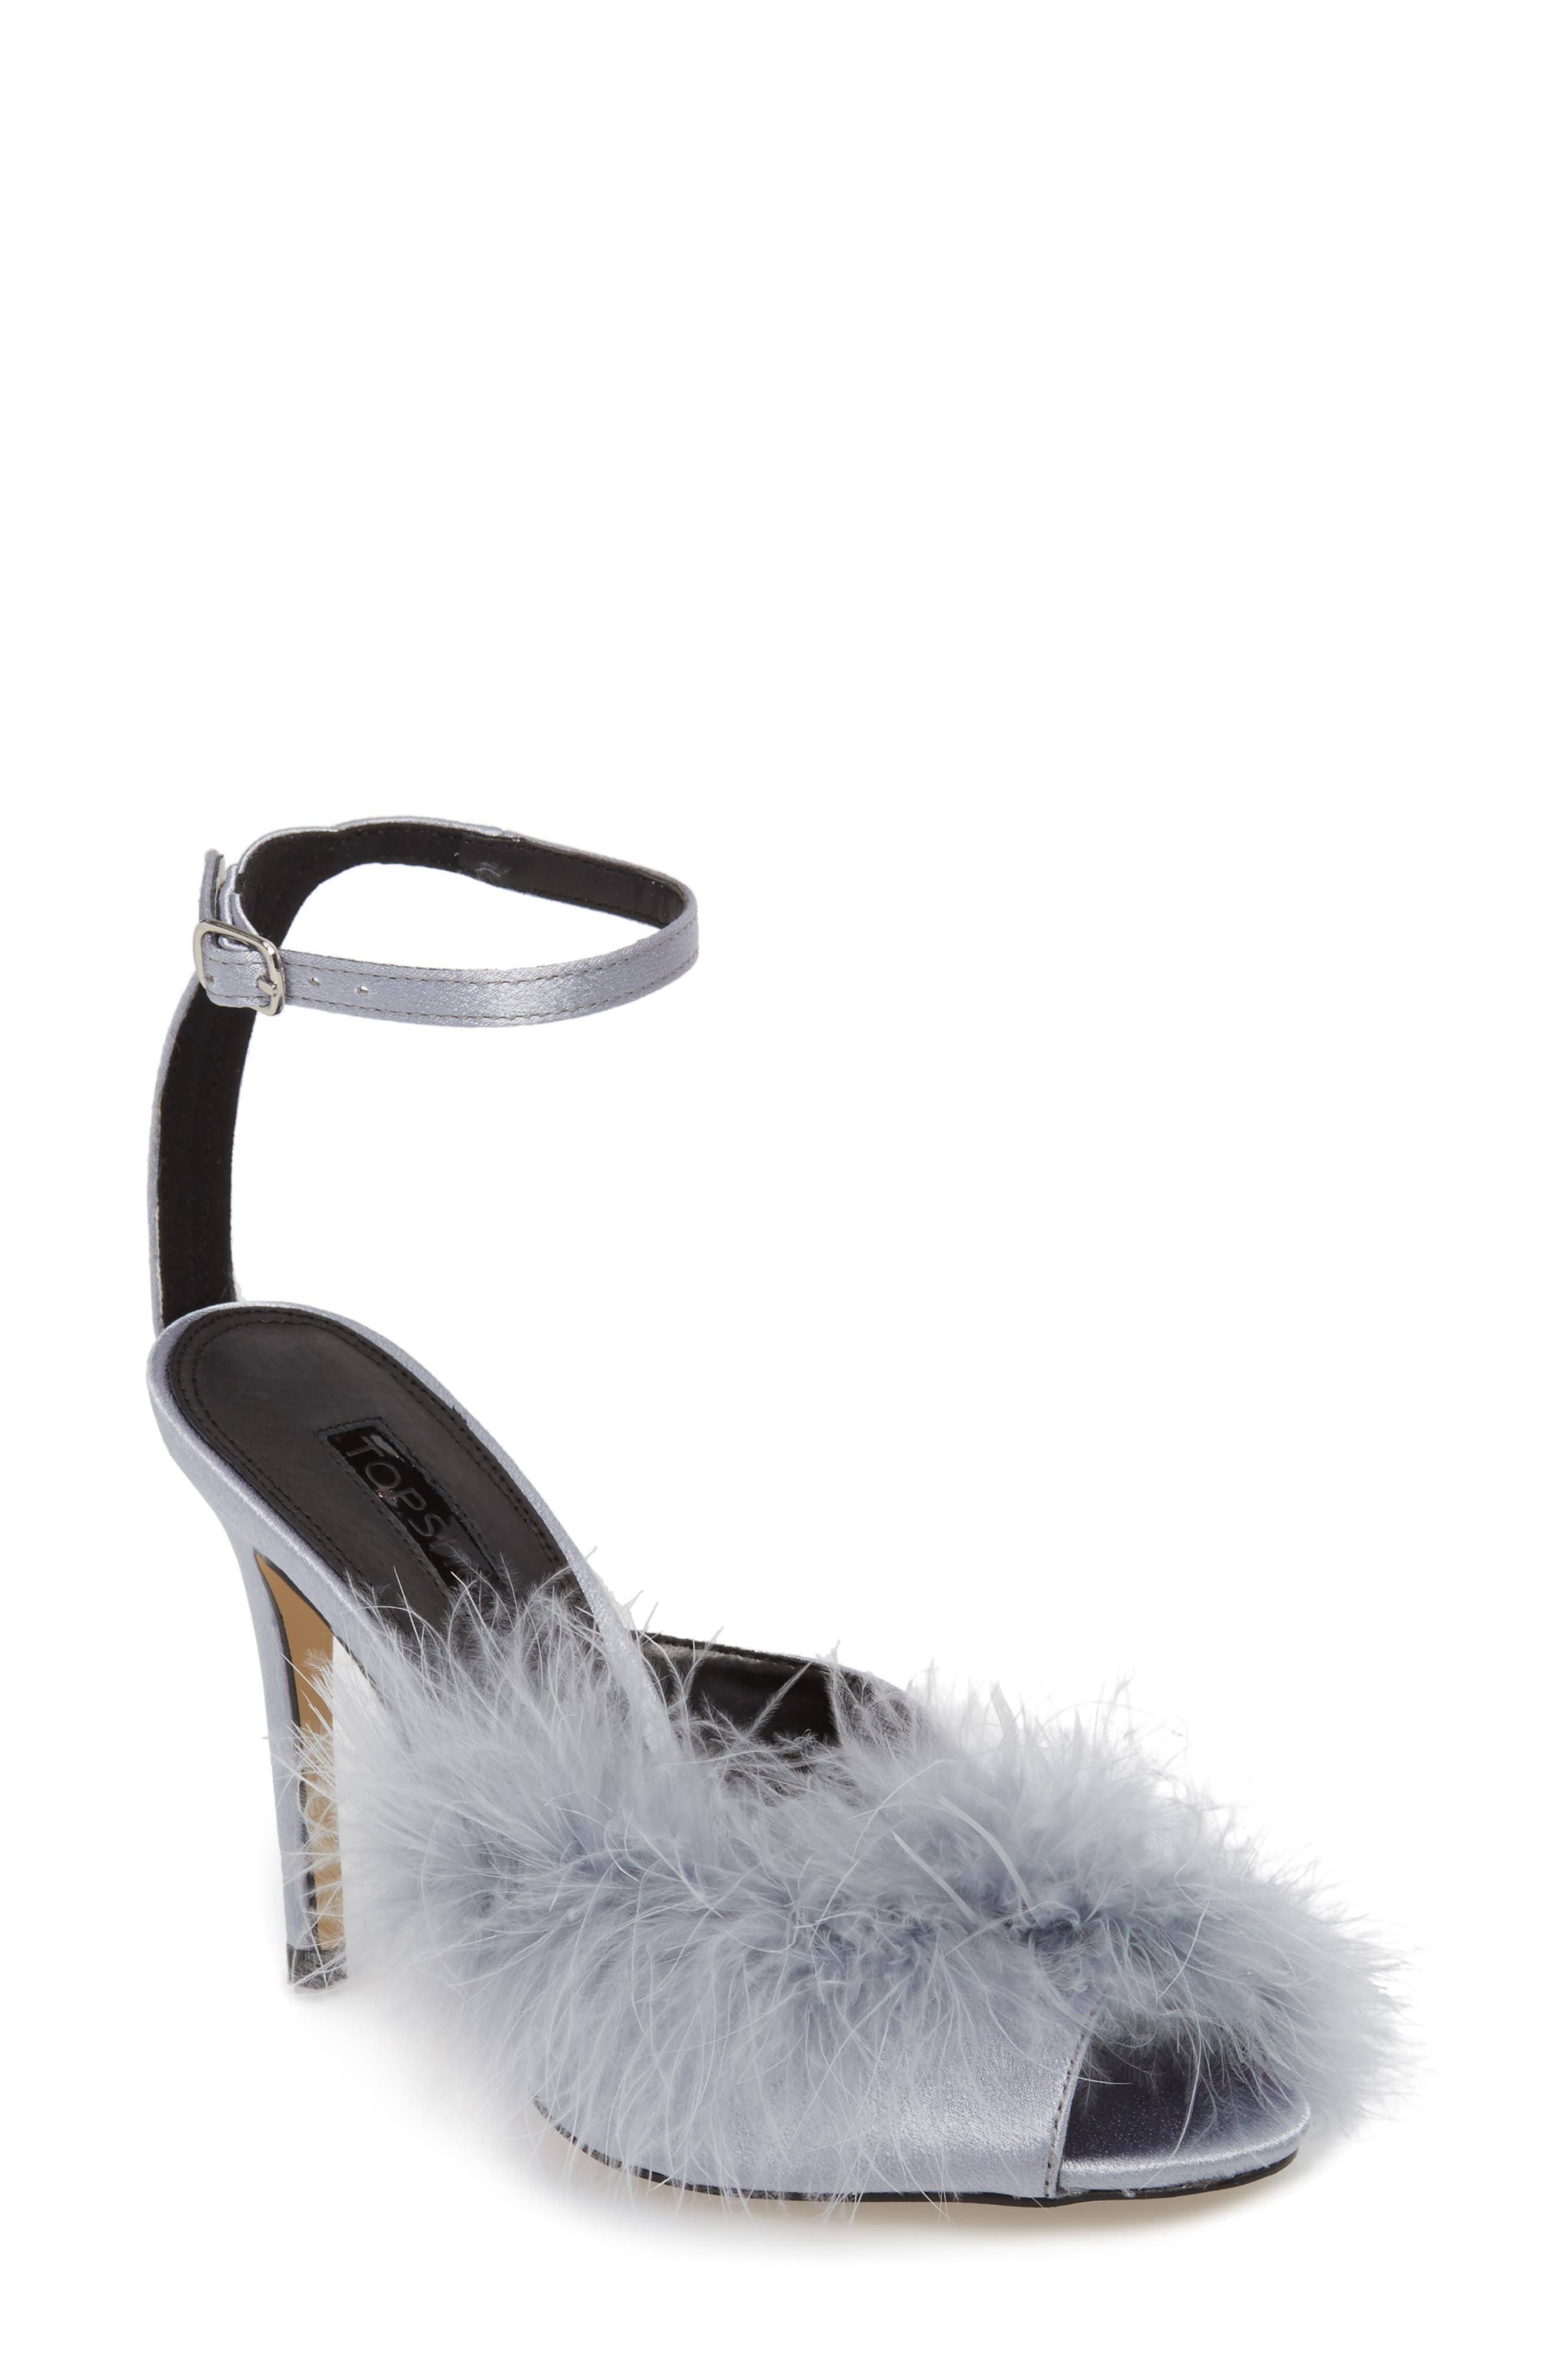 Roar Feather Sandal,                         Main,                         color, Grey